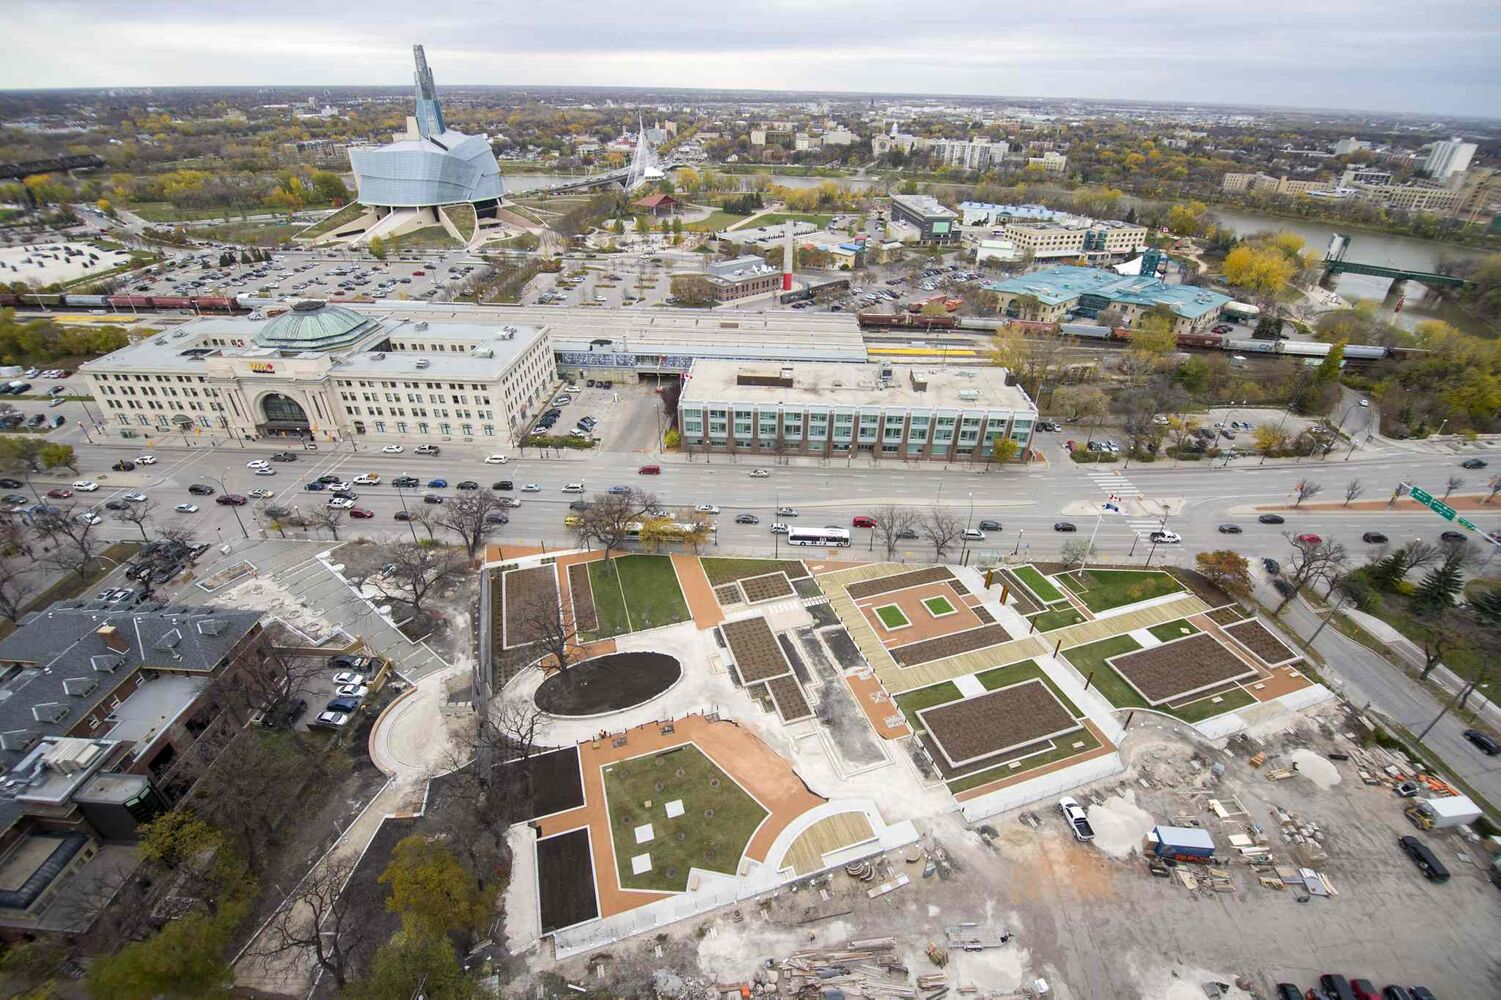 A bird's eye view of Upper Fort Garry, as seen from Prairie360 restaurant. (DAVID LIPNOWSKI / WINNIPEG FREE PRESS)